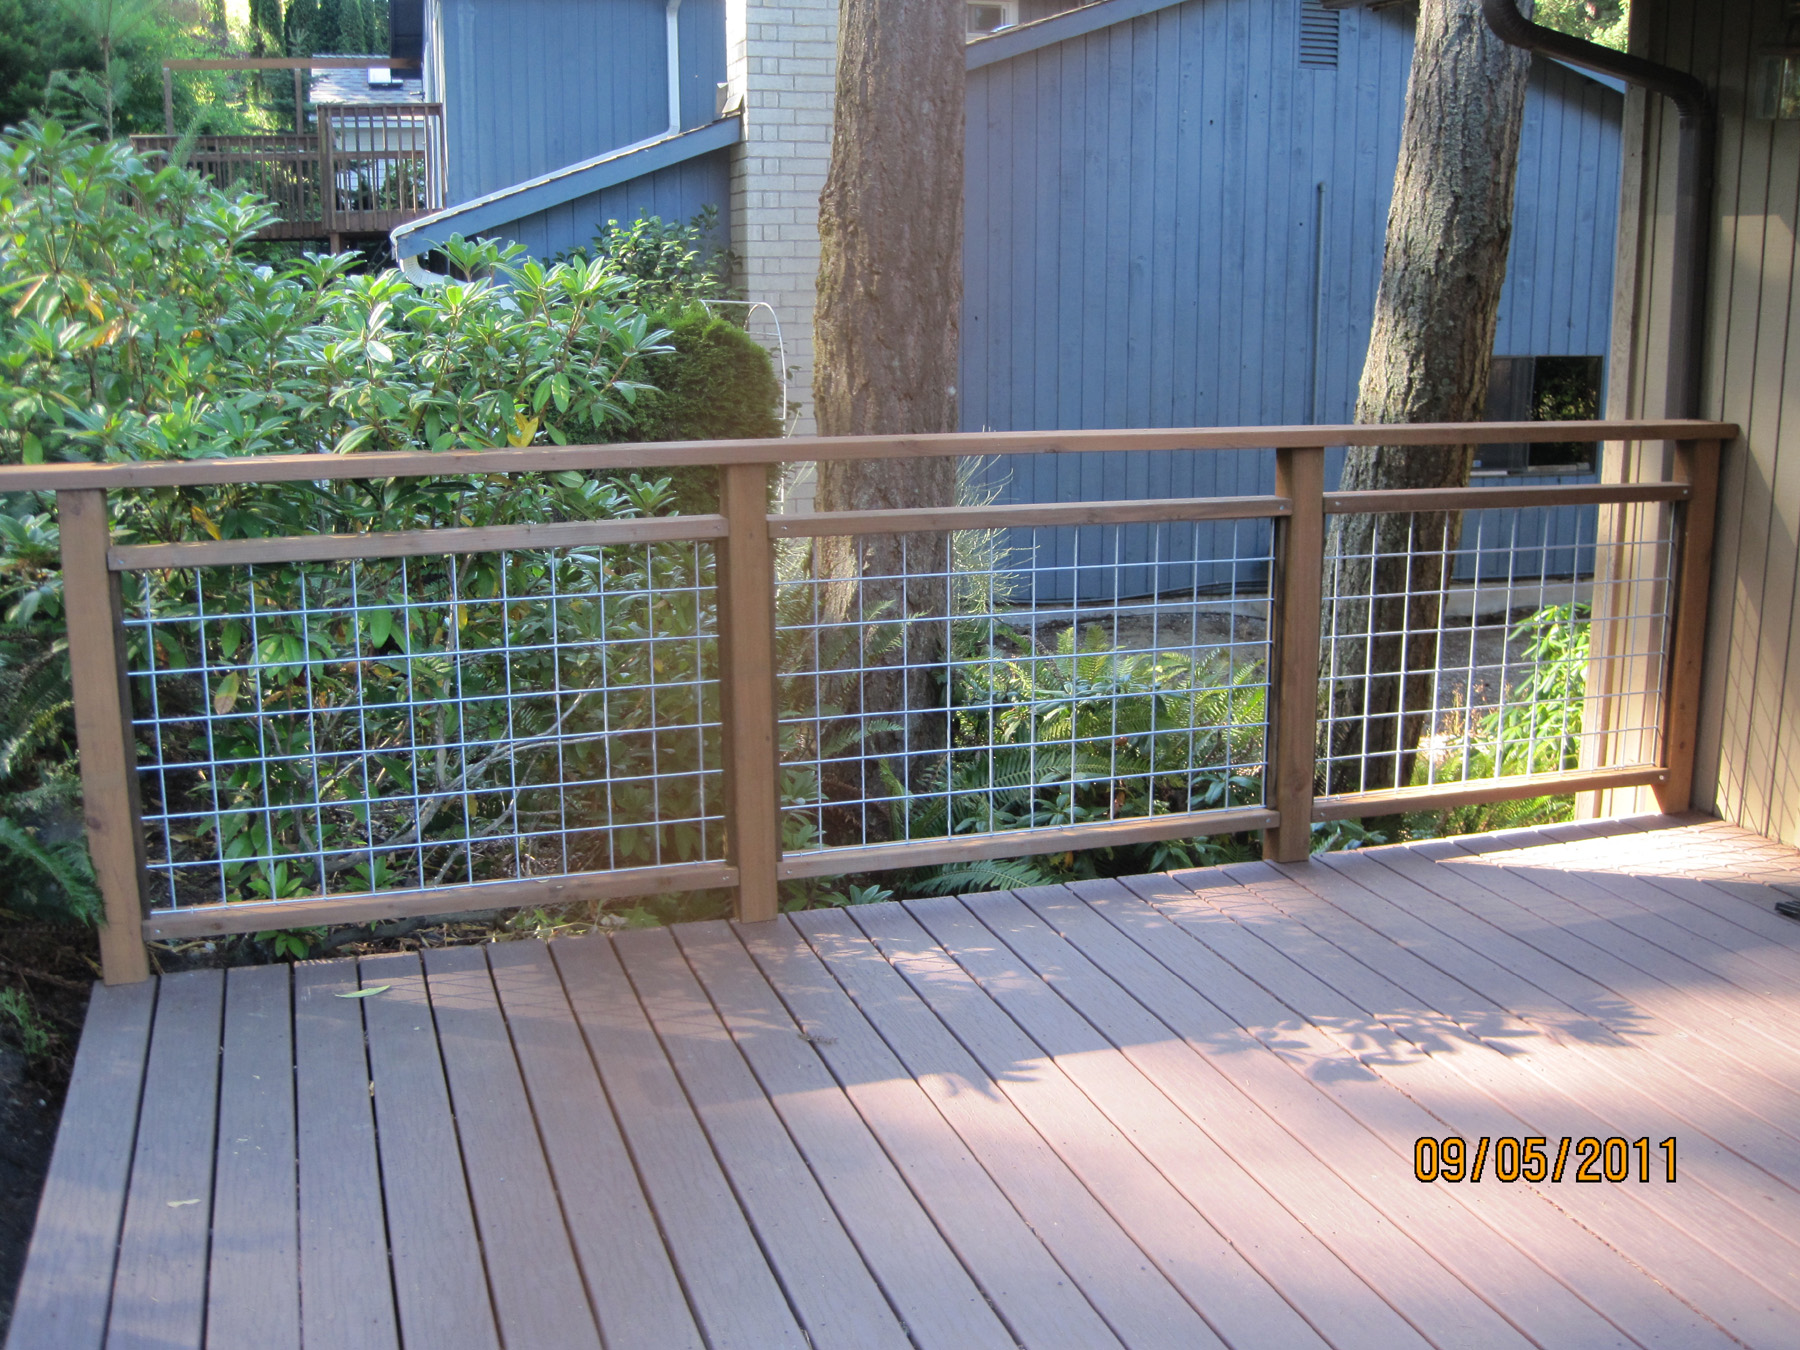 Do it yourself deck railing is done hamster dreams for How to build an inexpensive deck